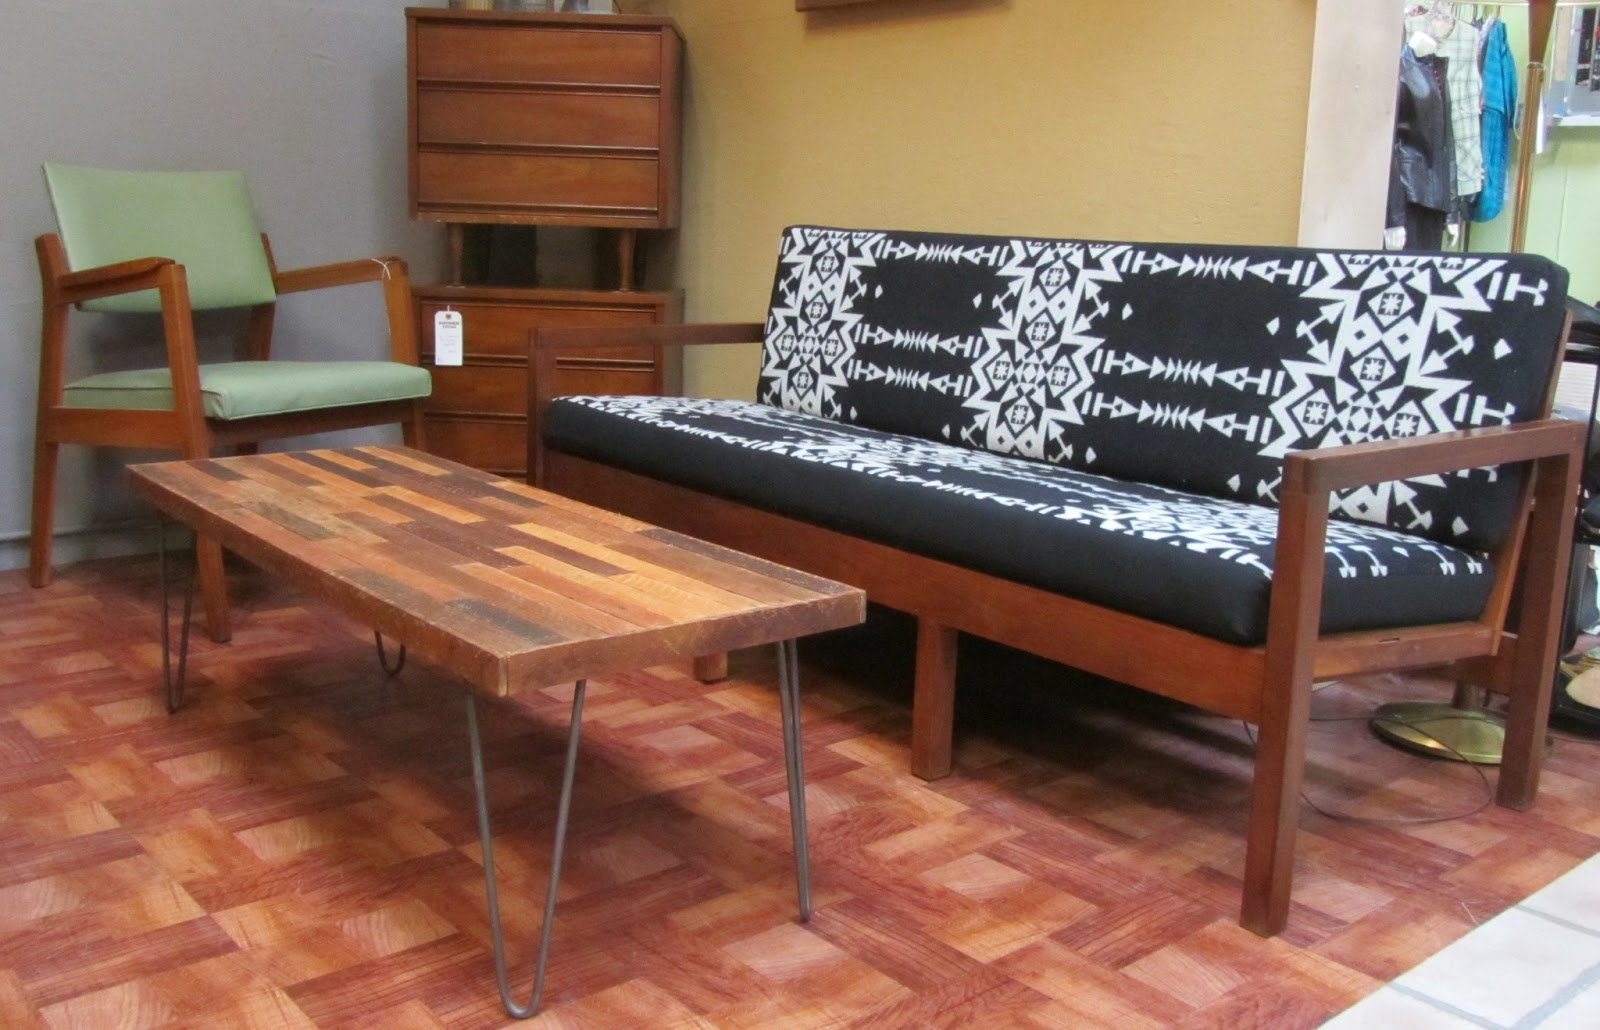 Mid century modern furniture portland or elegant interior Reclaimed wood furniture portland oregon